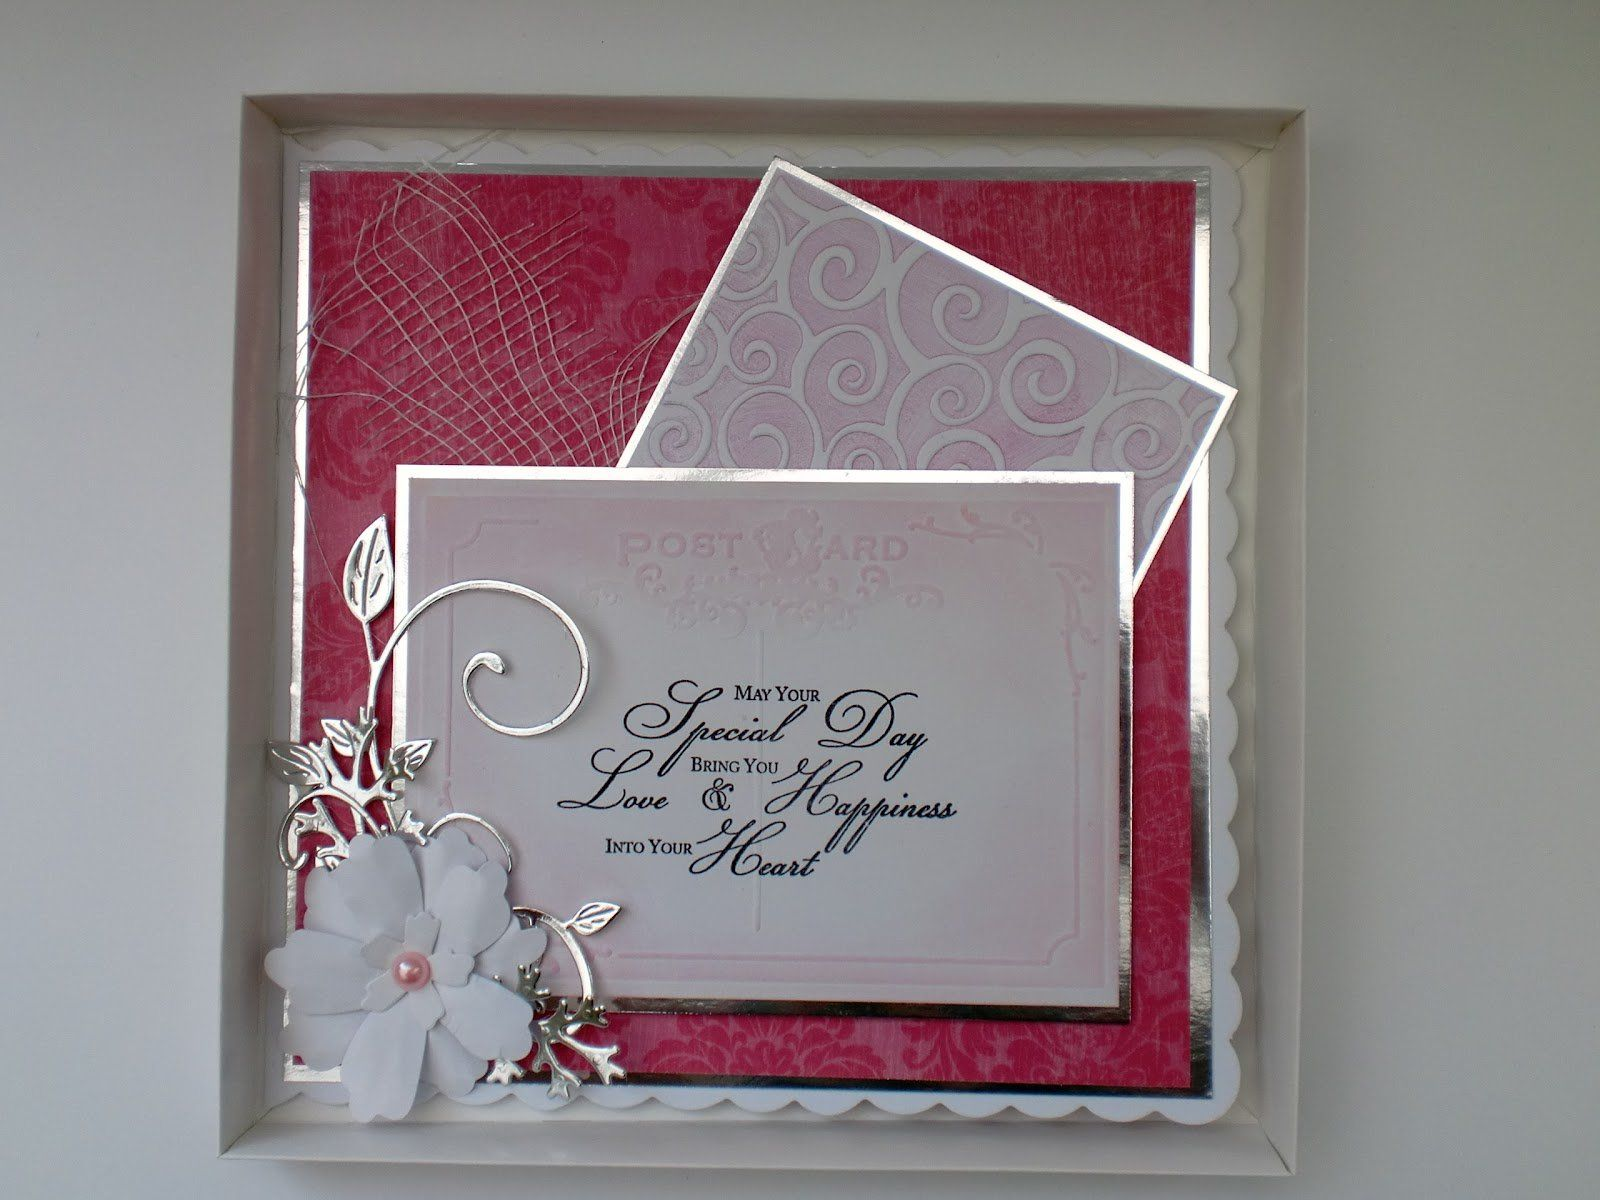 Elegant white and grey color scheme for wedding anniversary card